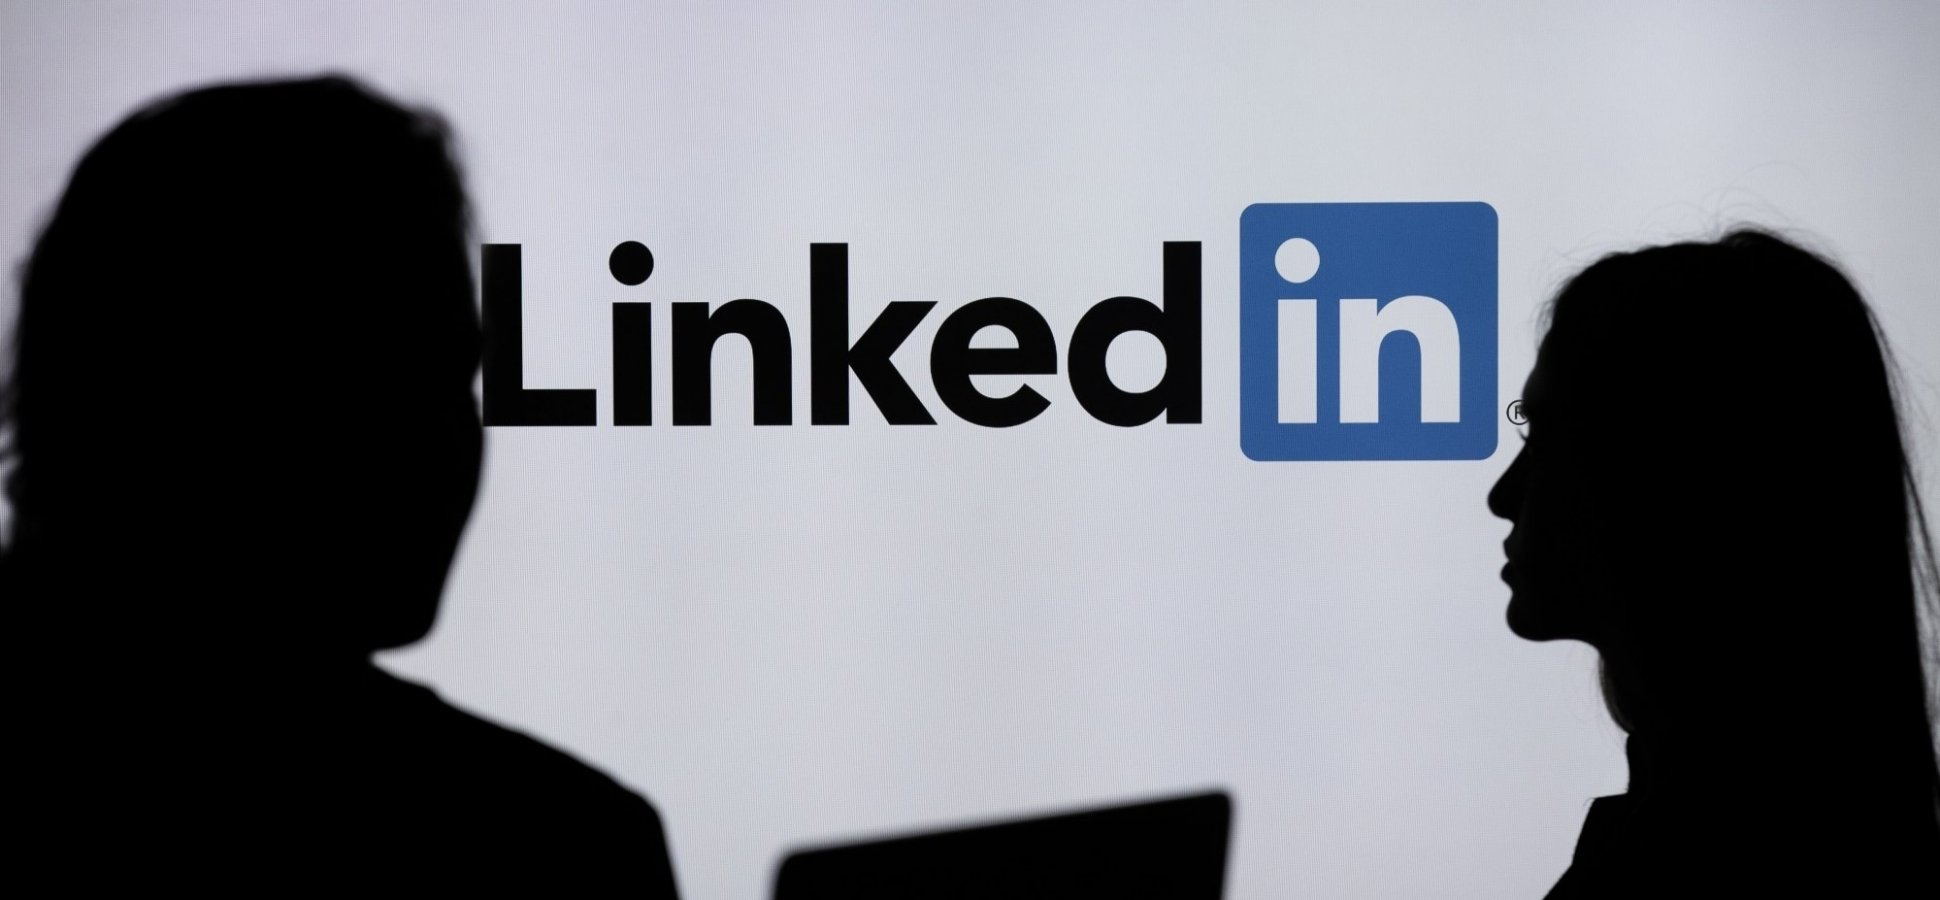 Here's How to Send a LinkedIn Connection Request to Someone You Haven't Met Before Without Sounding Like Spam